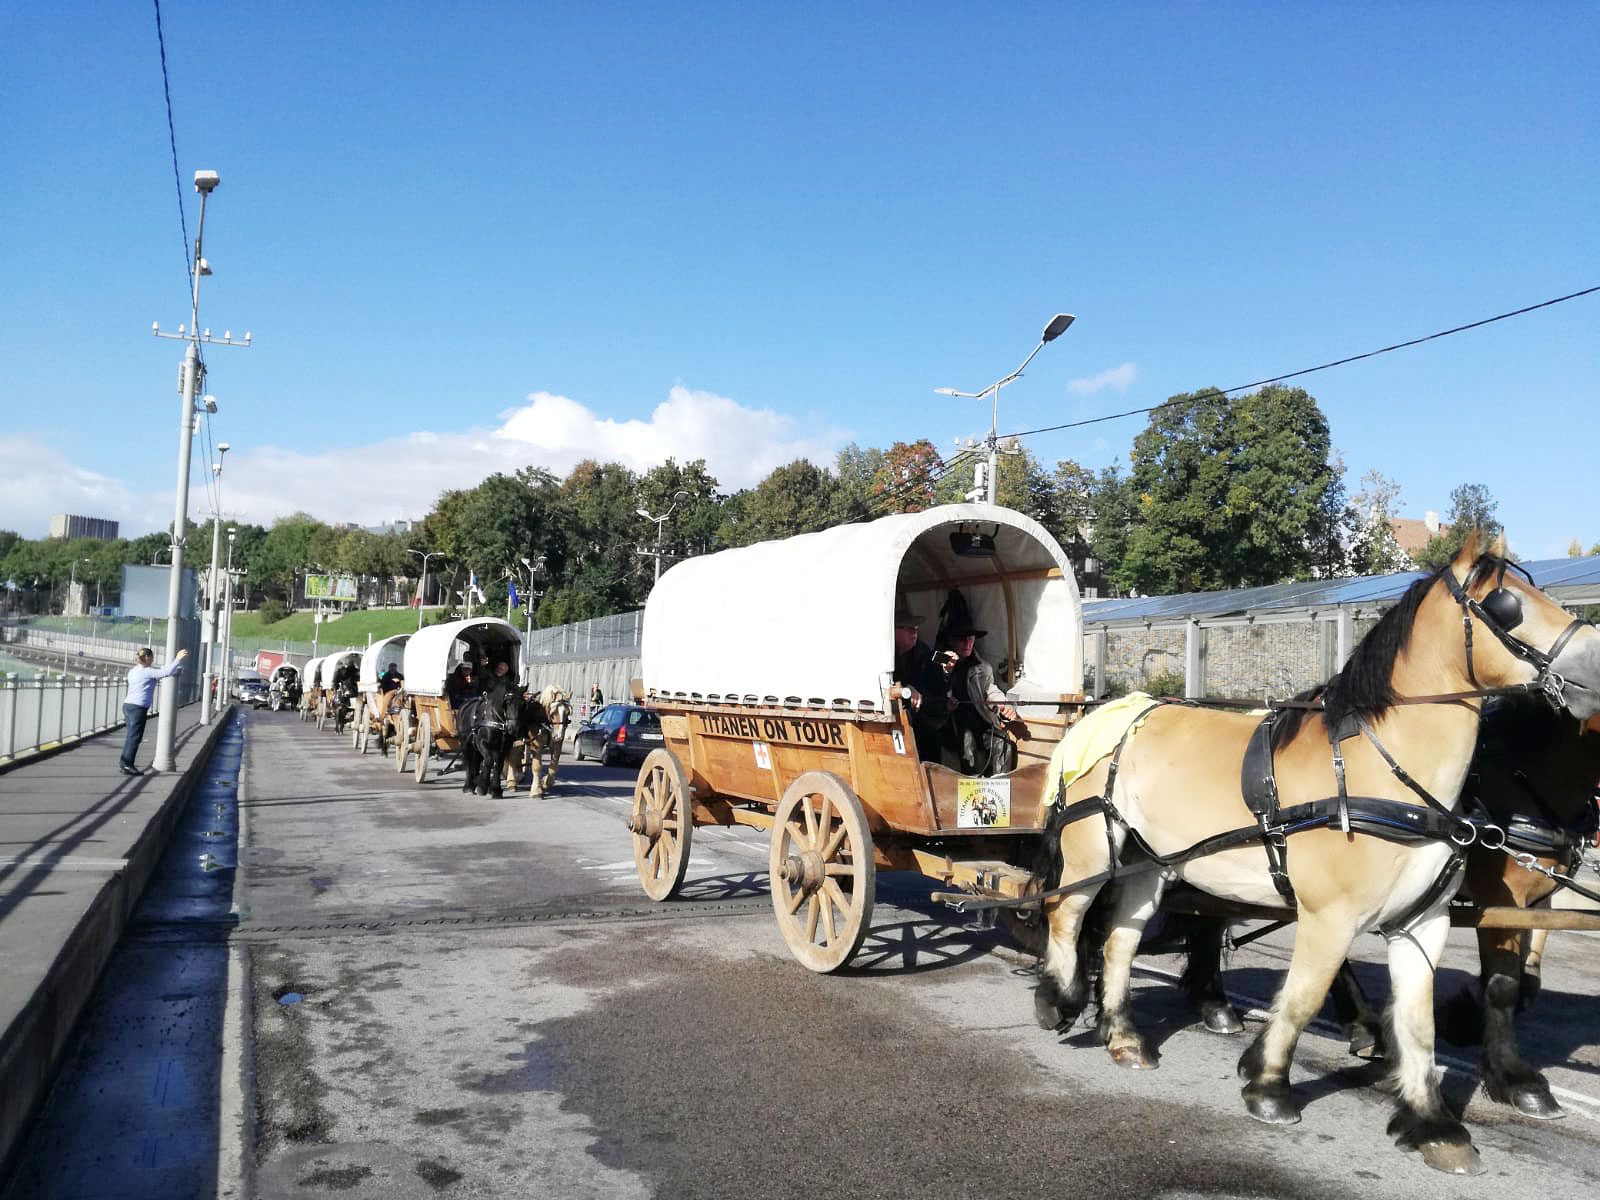 Grenzübergang Russland - Titanen on tour in Russland